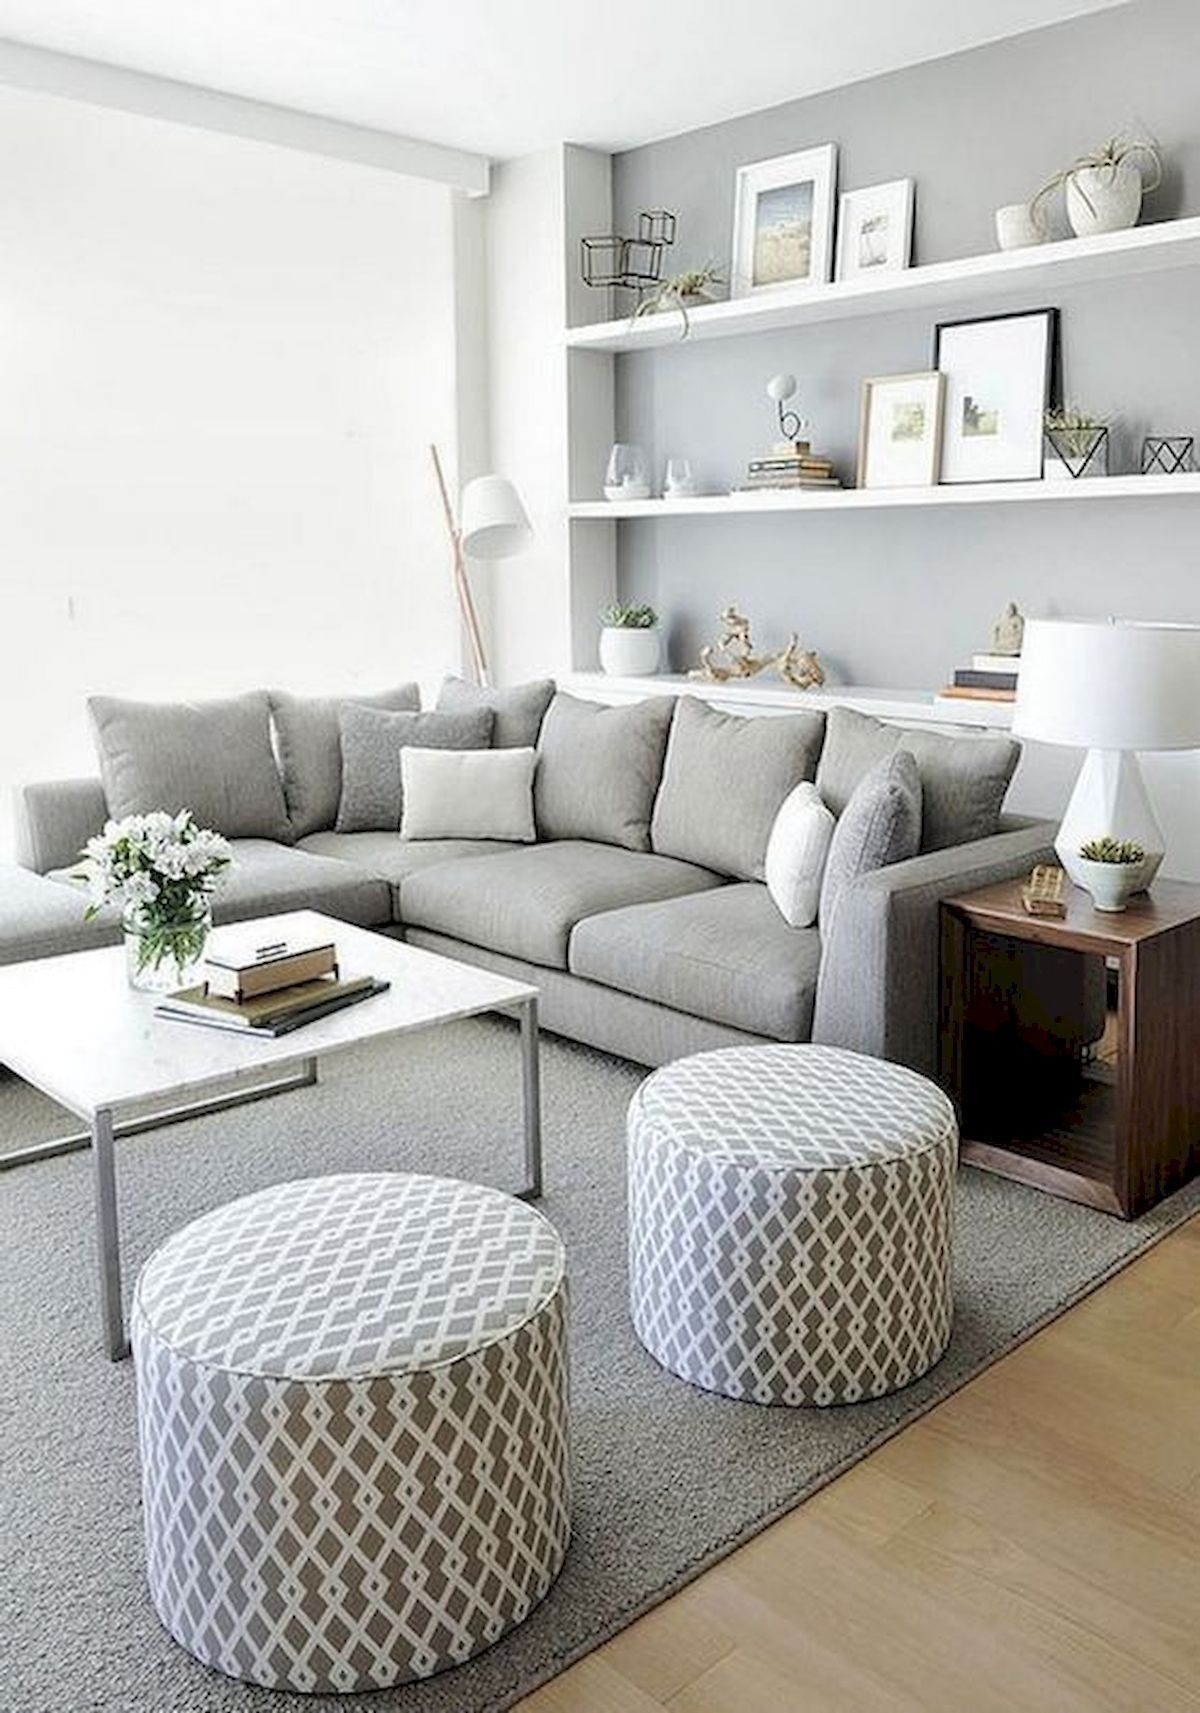 20+ Best Apartment Decorating Ideas On A Budget To Try ...